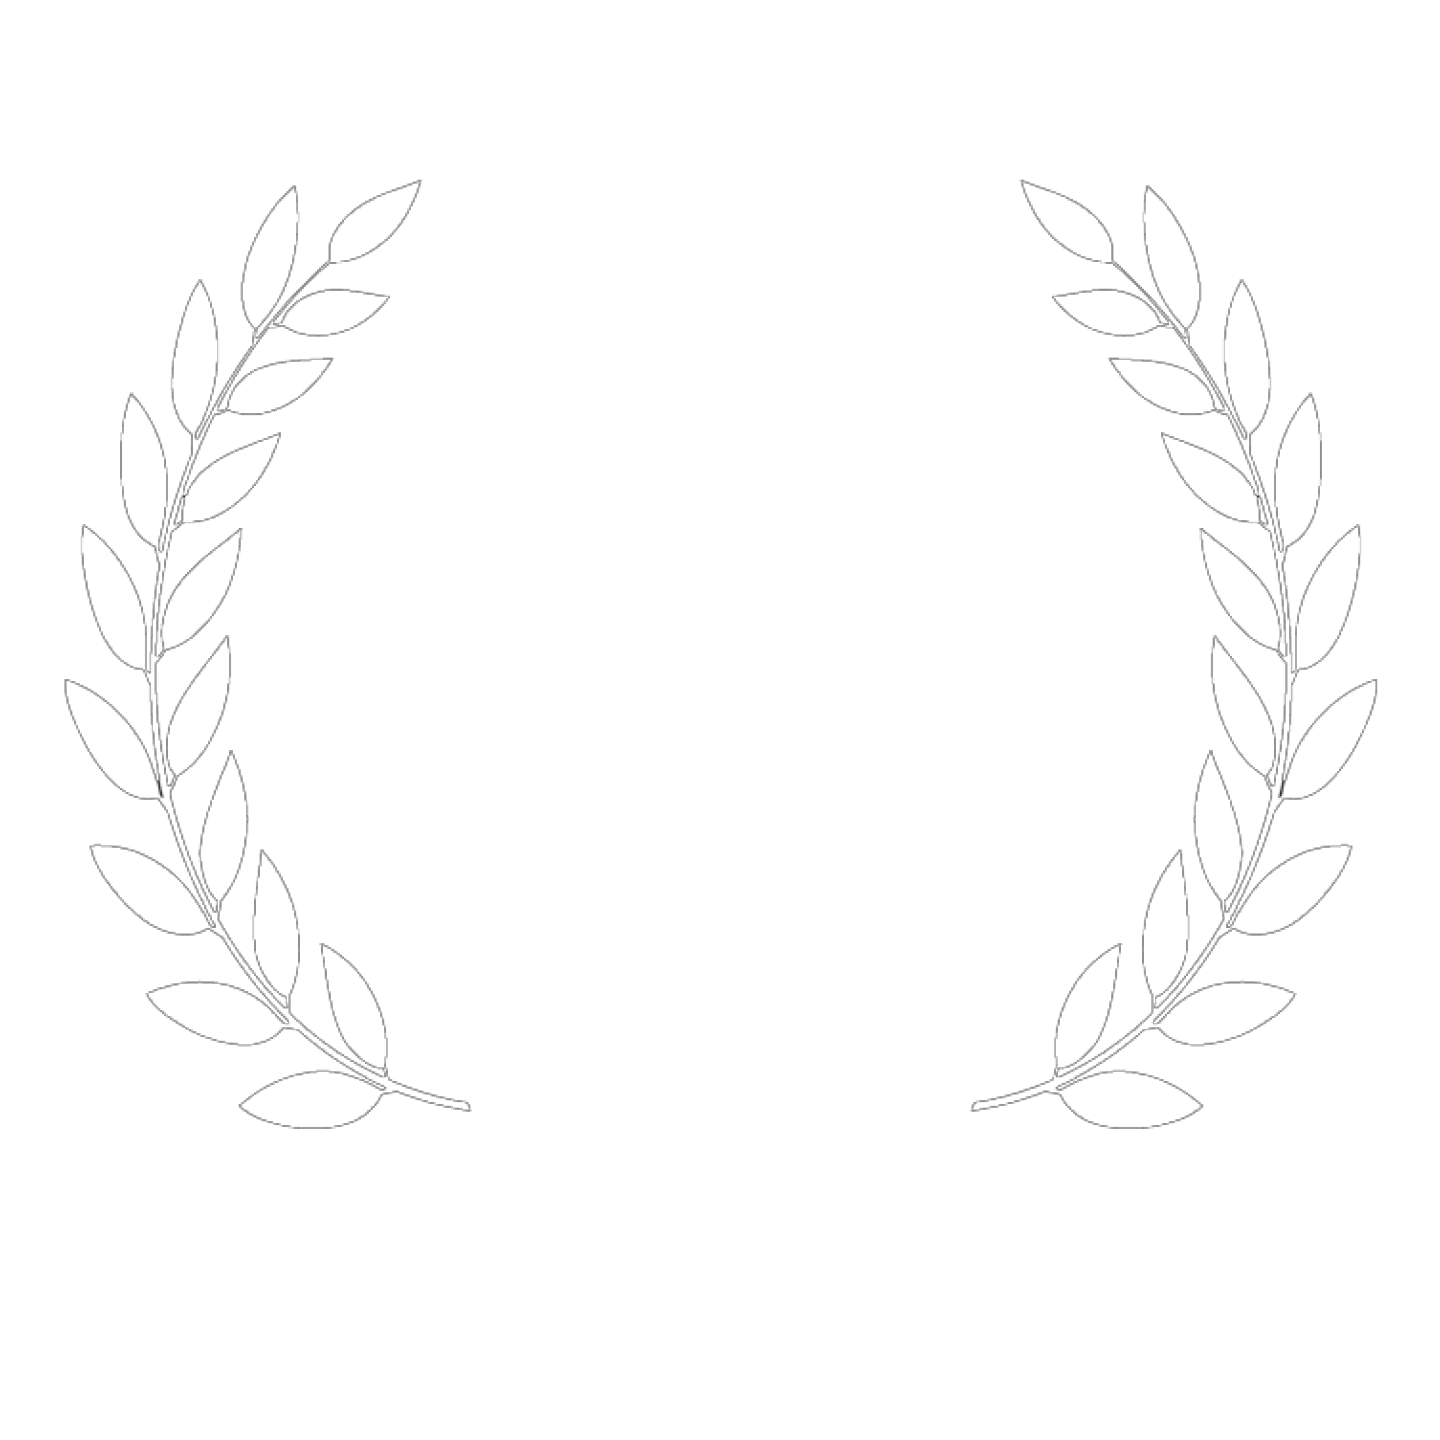 Off West End Award - Best Performance Piece - Daniel Ward